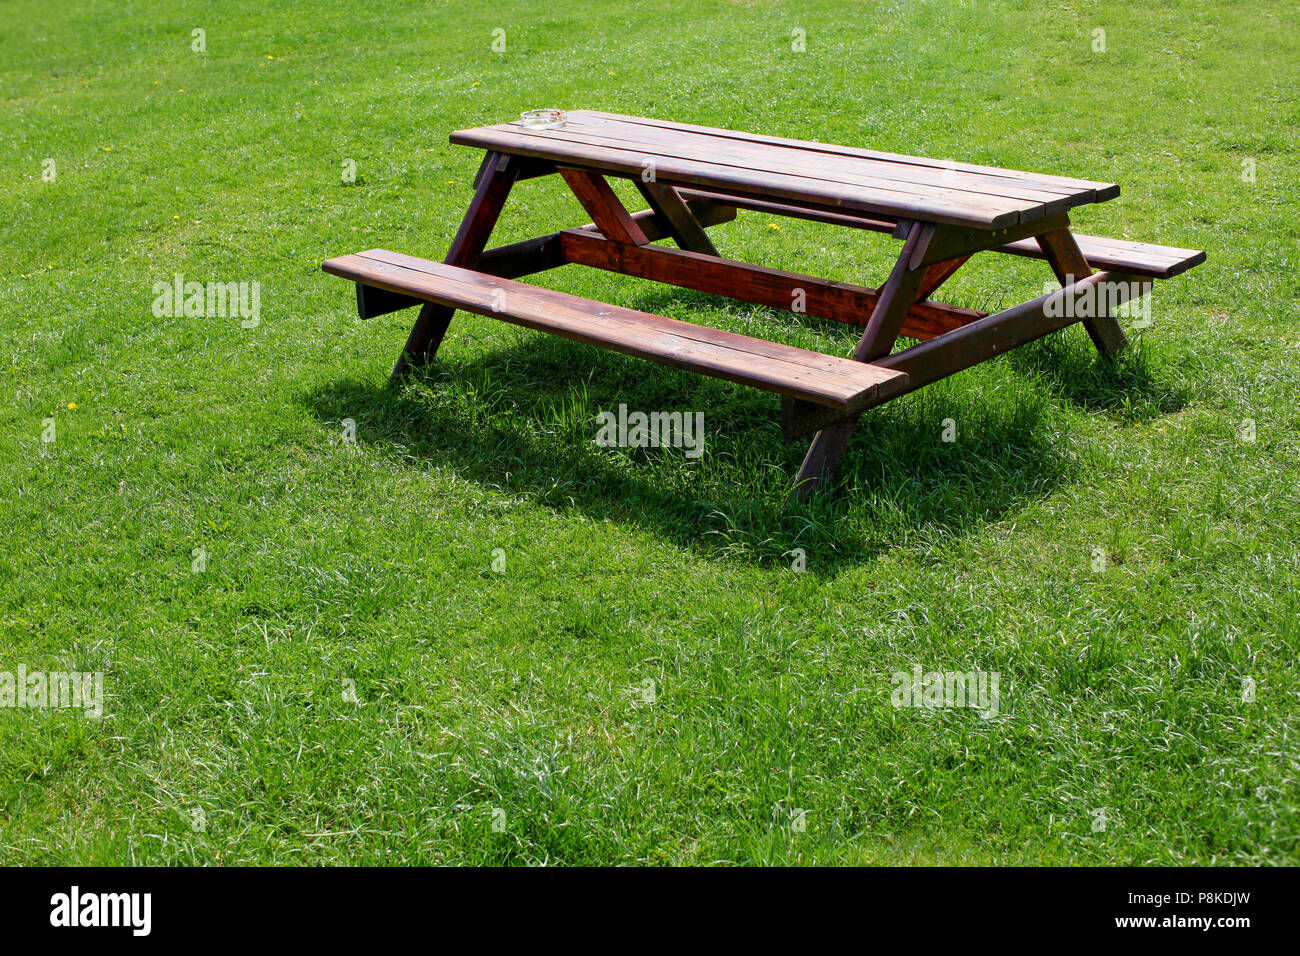 Fabulous Garden Furniture Picnic Table Wooden Desk And Bench In Dailytribune Chair Design For Home Dailytribuneorg